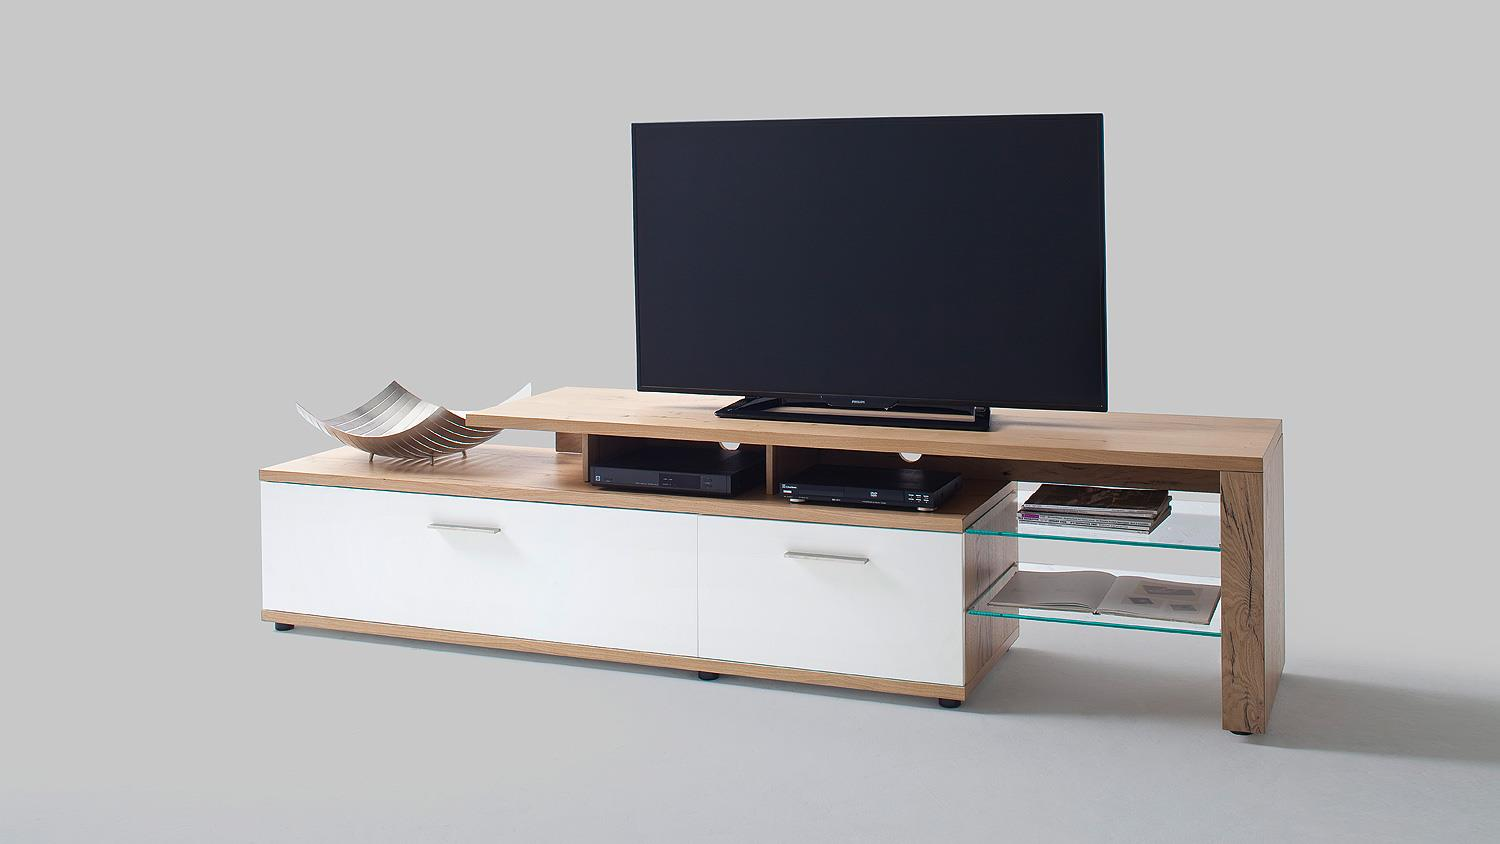 Tv Board Lowboard Tv Board 2 Nizza Lowboard Weiß Matt Lack Crackeiche Furniert